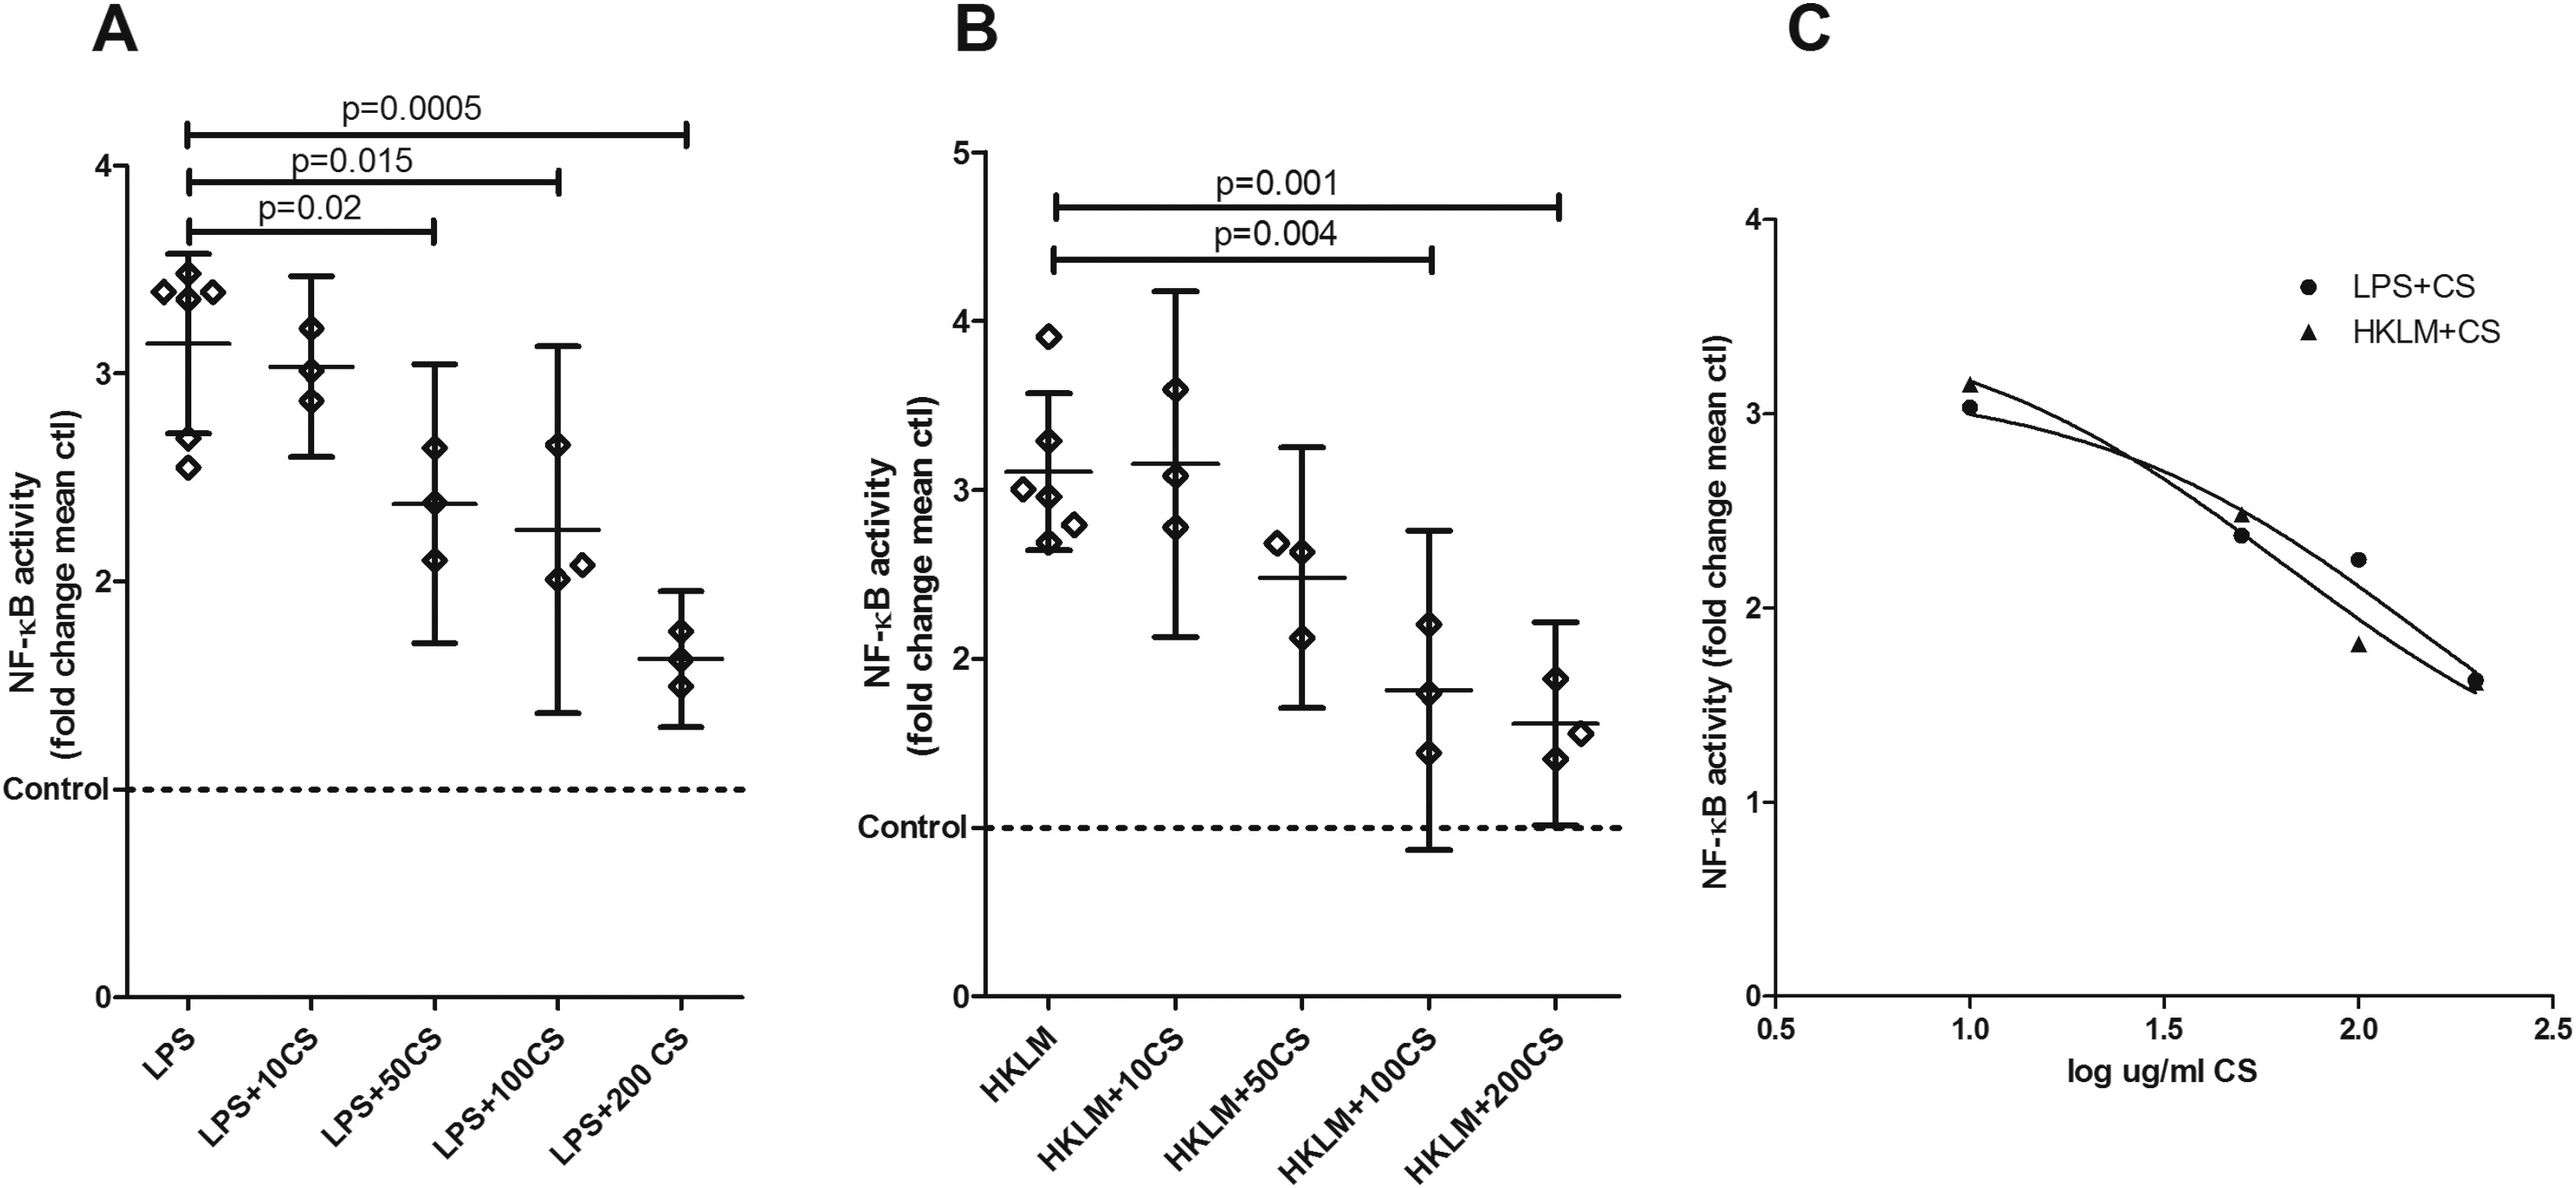 Chondroitin Sulphate Inhibits Nf B Activity Induced By Interaction Of Pathogenic And Damage